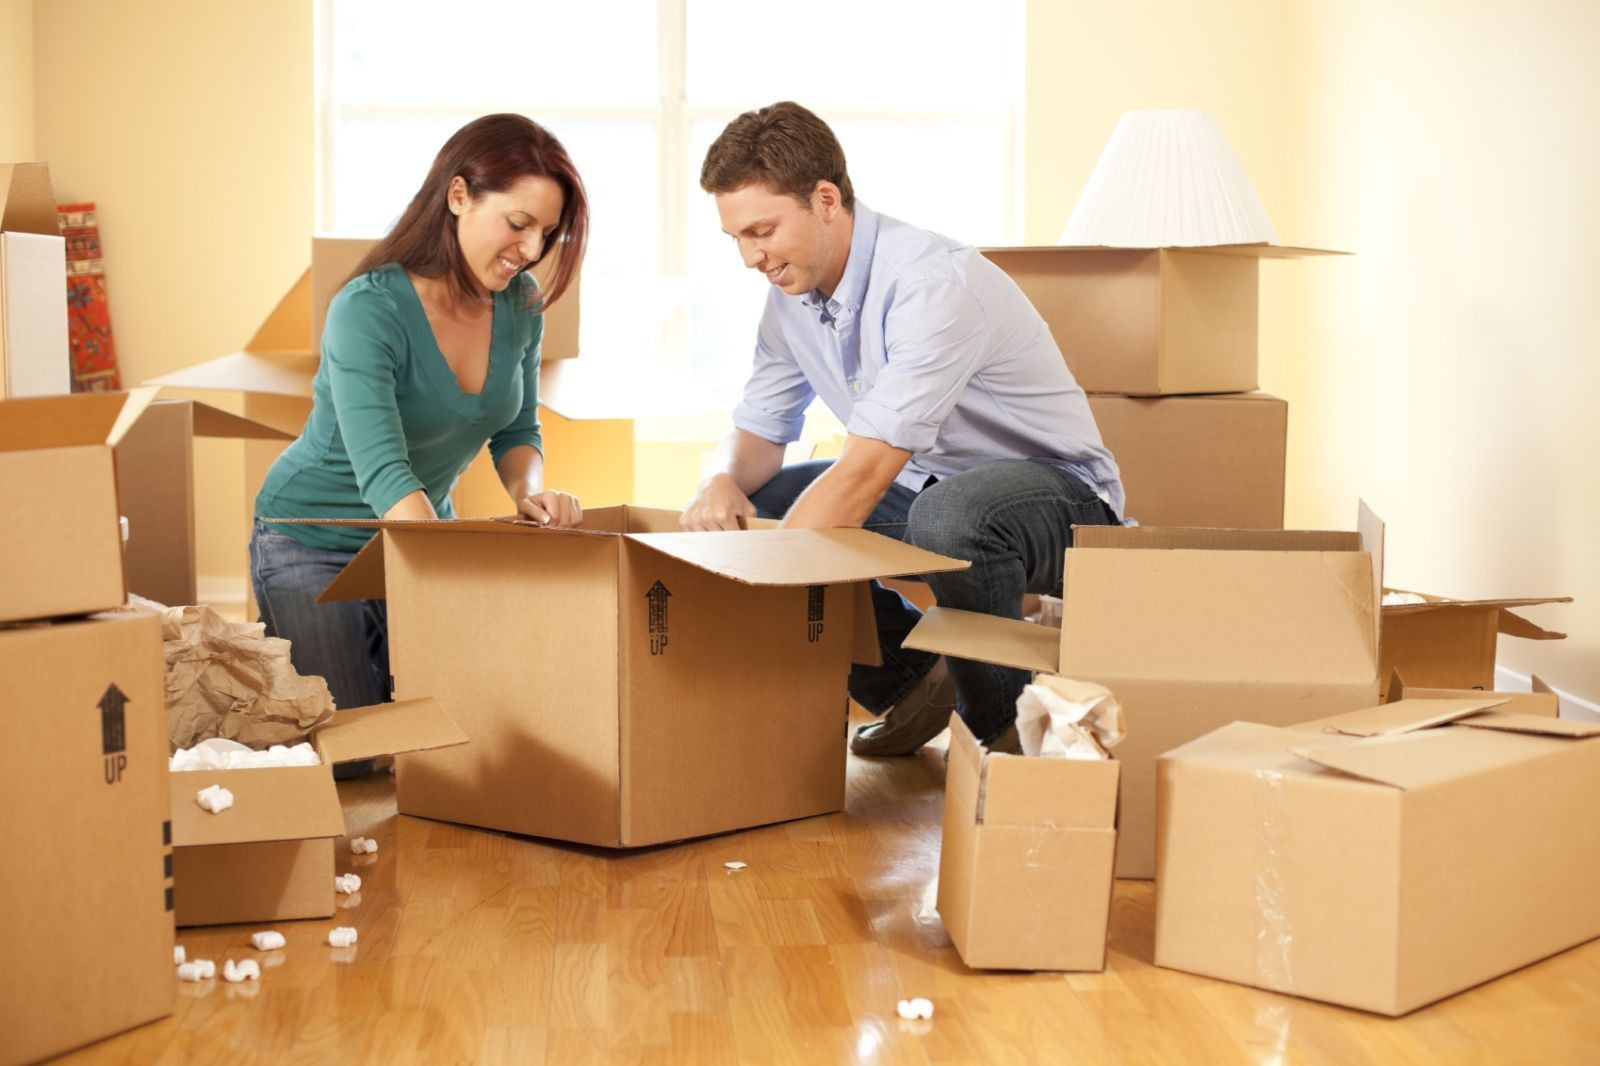 10 Essential Packing Items to Pack Your House Professionally